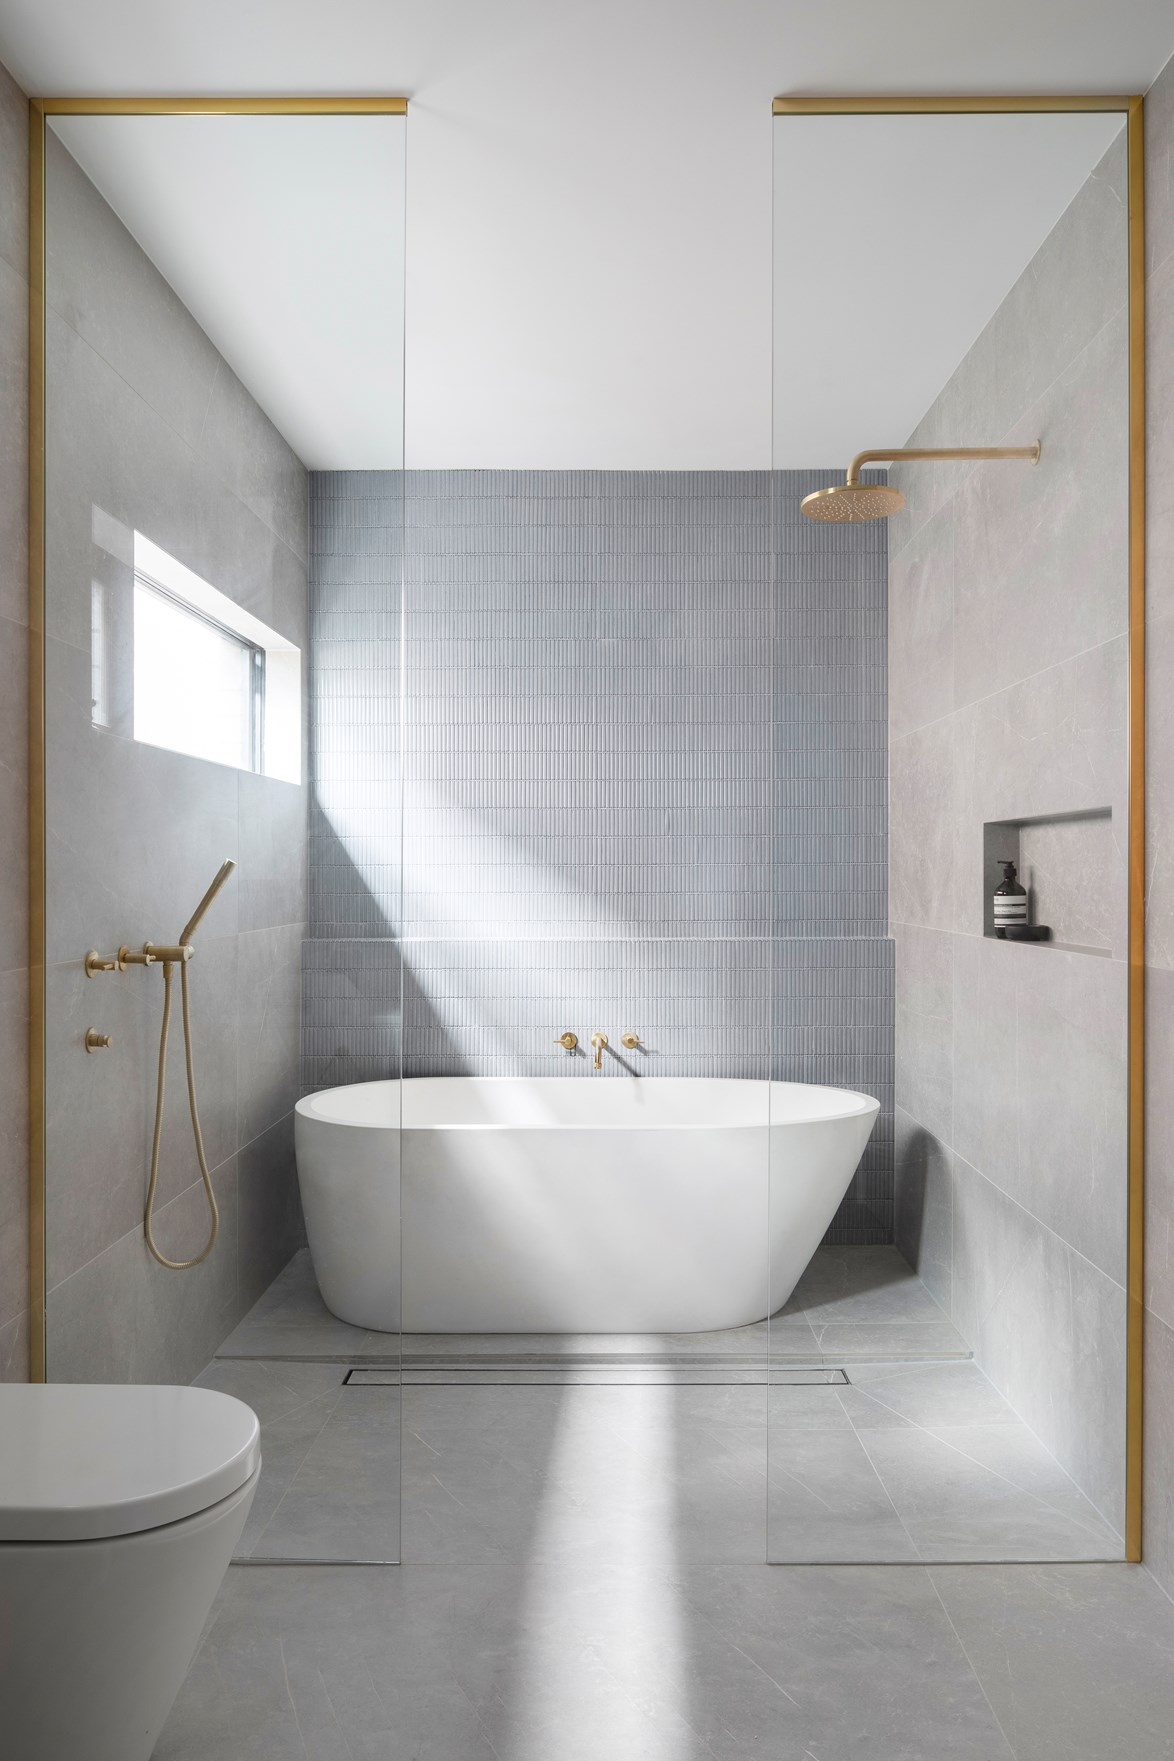 "A freestanding bath from Concrete Nation takes pride of place in the glamorous main bathroom in [Bec and George Dourus' latest home renovation](https://www.homestolove.com.au/bec-and-george-home-renovation-20669|target=""_blank""). The [walk-in shower](https://www.homestolove.com.au/walk-in-showers-21163